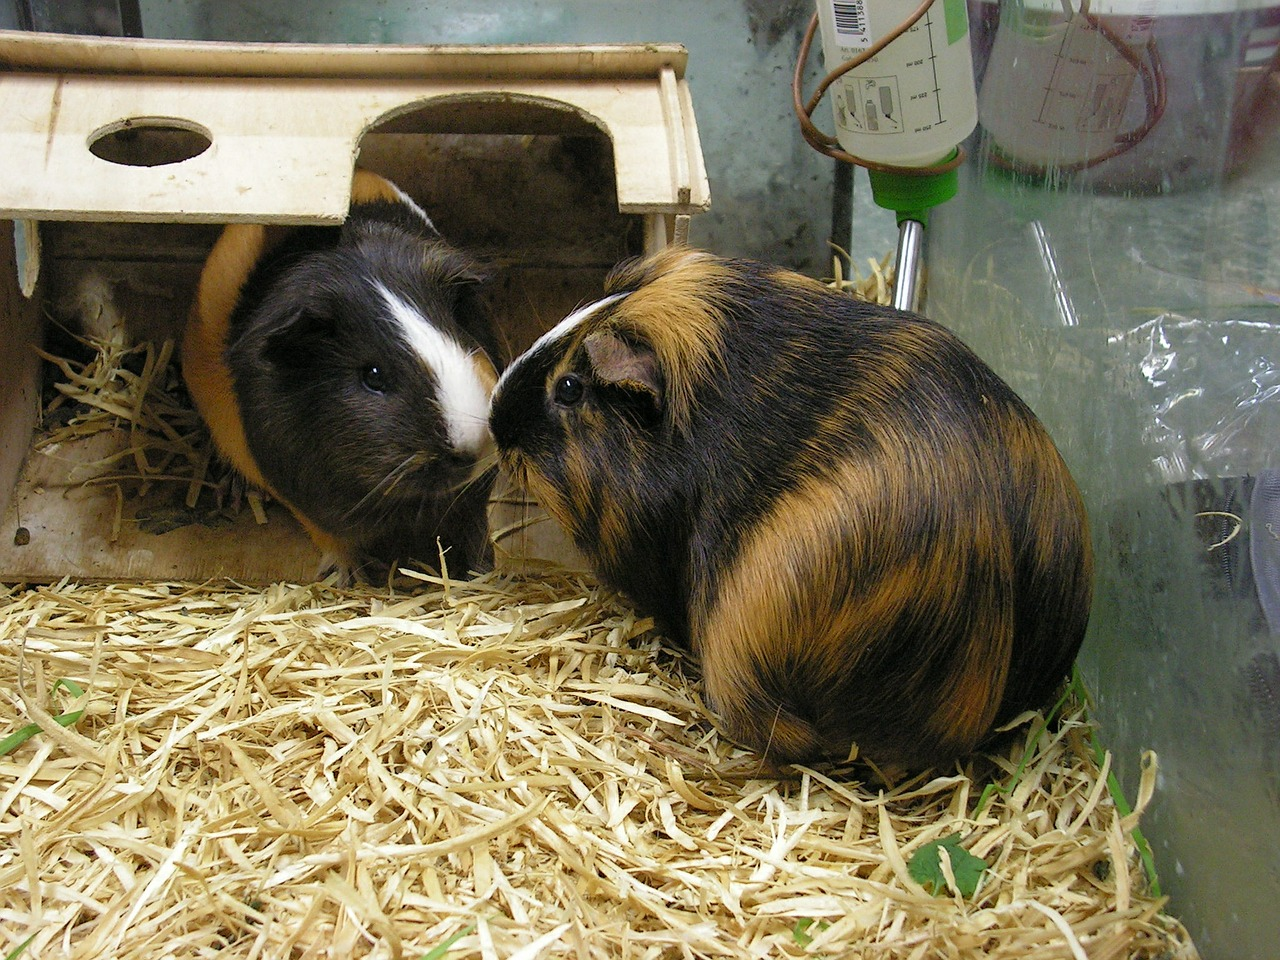 Give Your Guinea Pig the Best Living Conditions - 10 Cage Facts